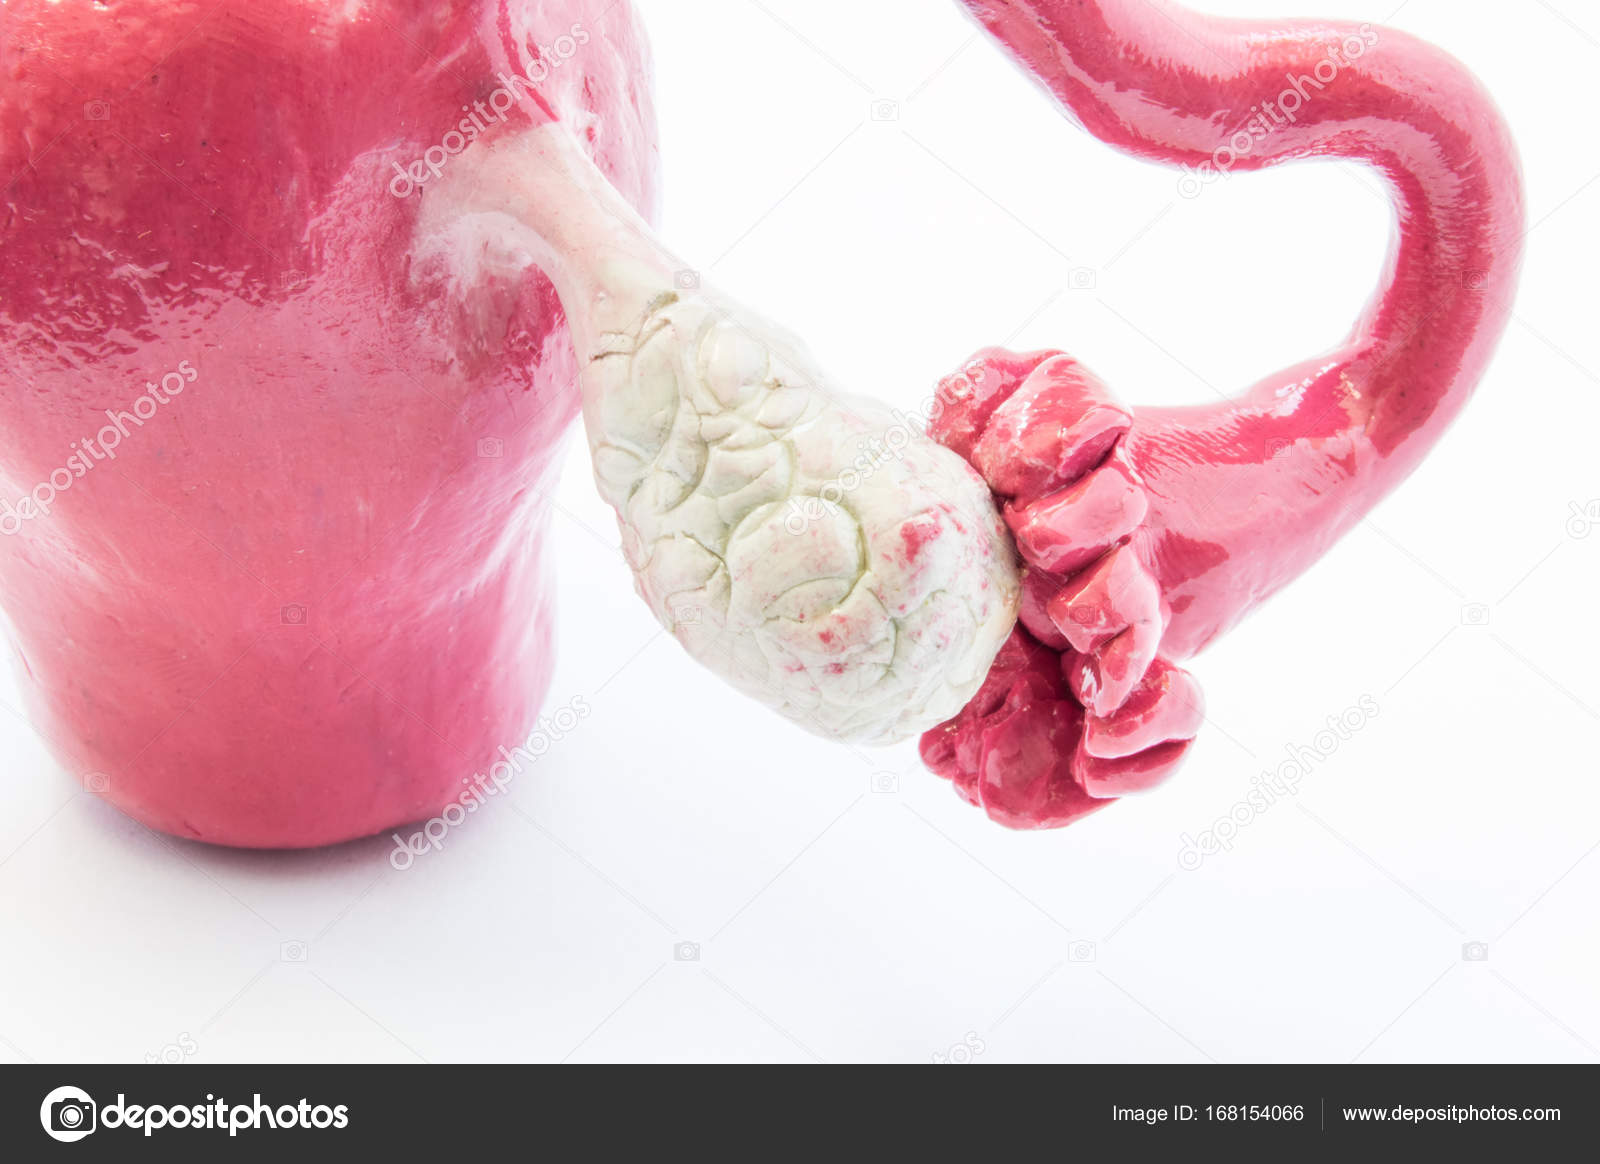 Anatomical 3d Model Of The Ovaries Fallopian Tube And Uterus Close